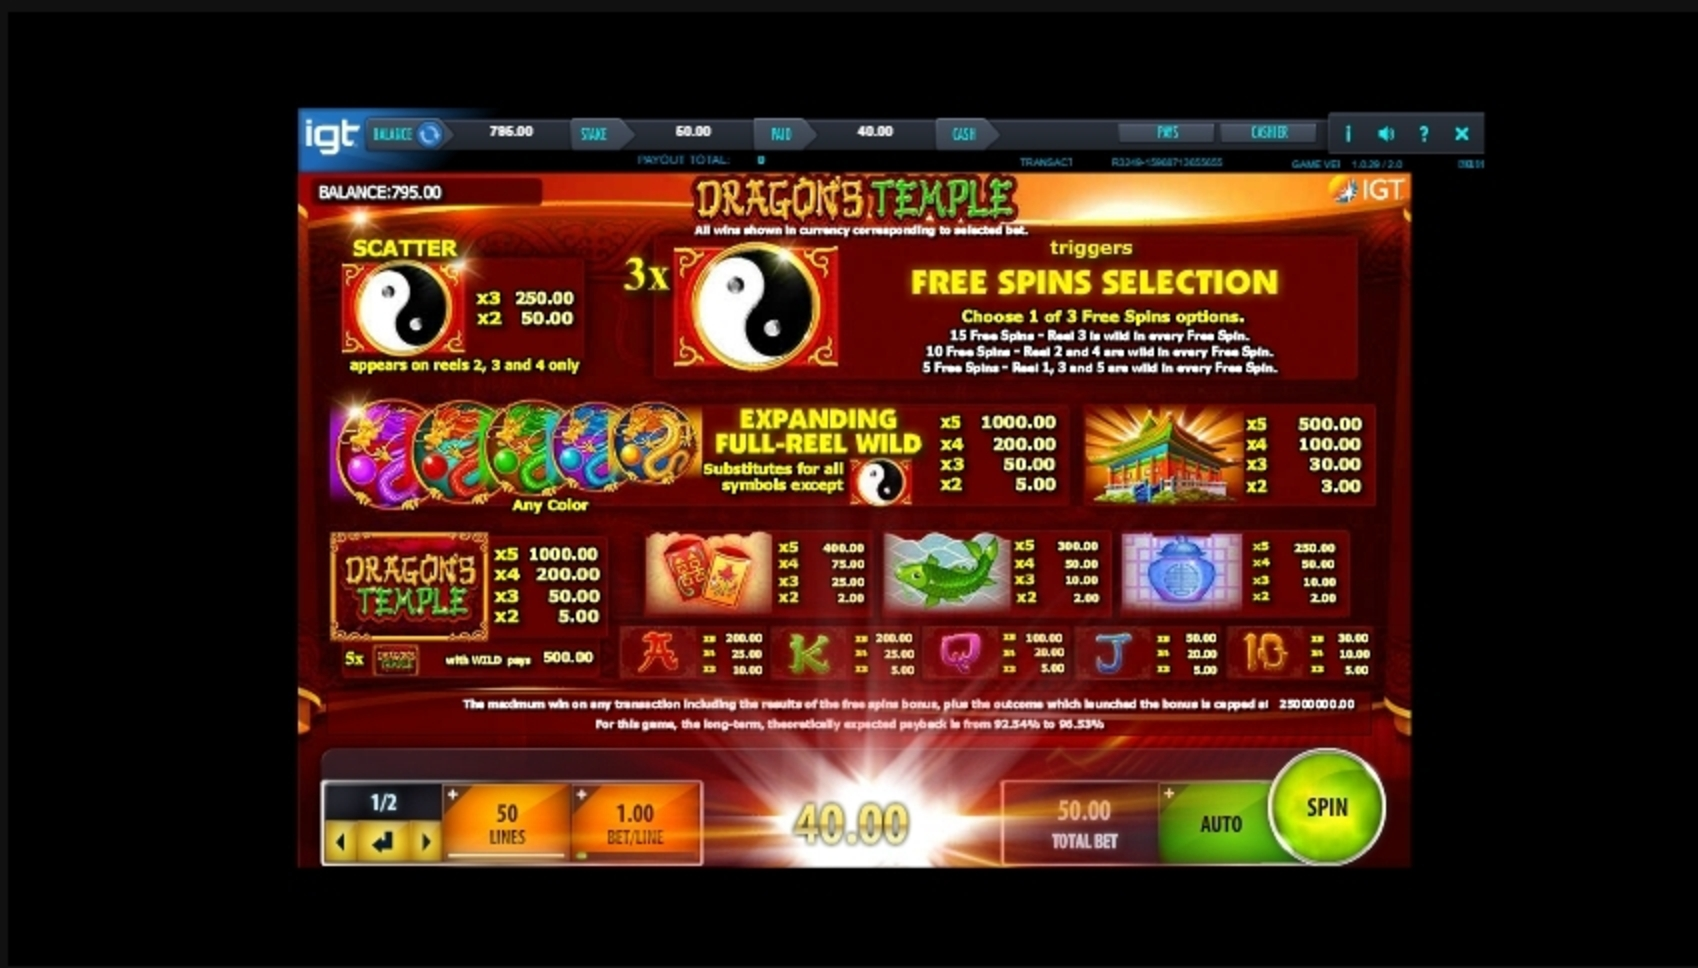 Info of Dragon's Temple Slot Game by IGT